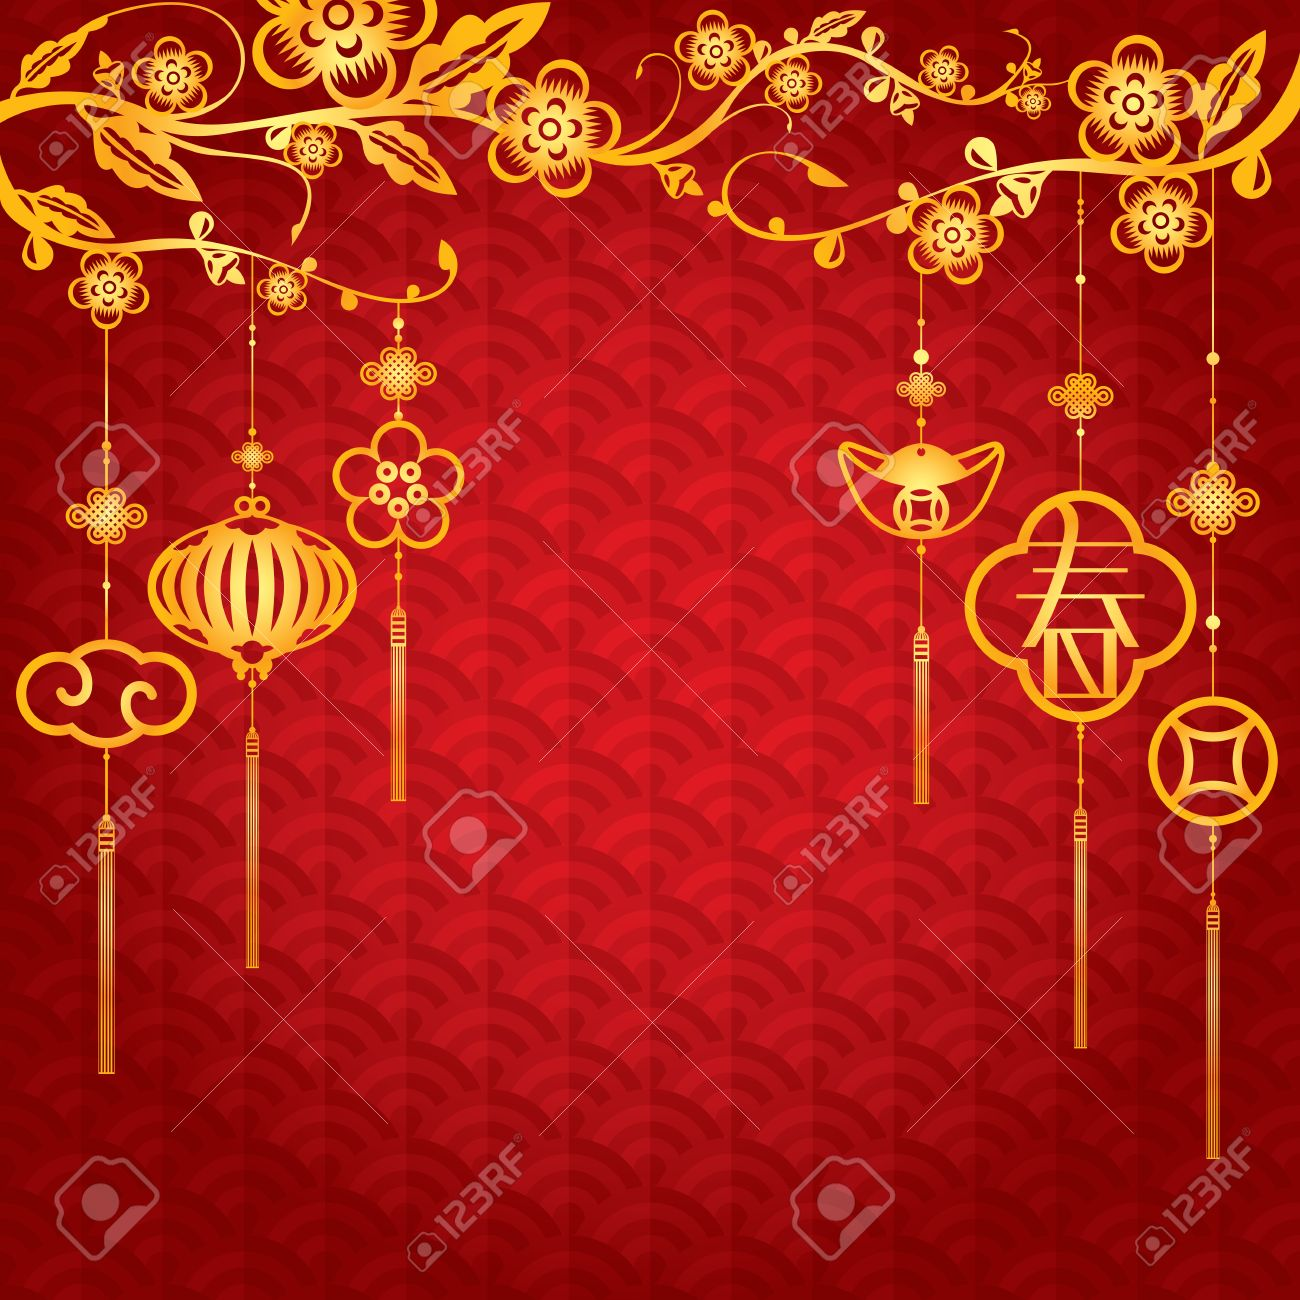 chinese new year background with golden element decoration the chinese letter means spring or brand new